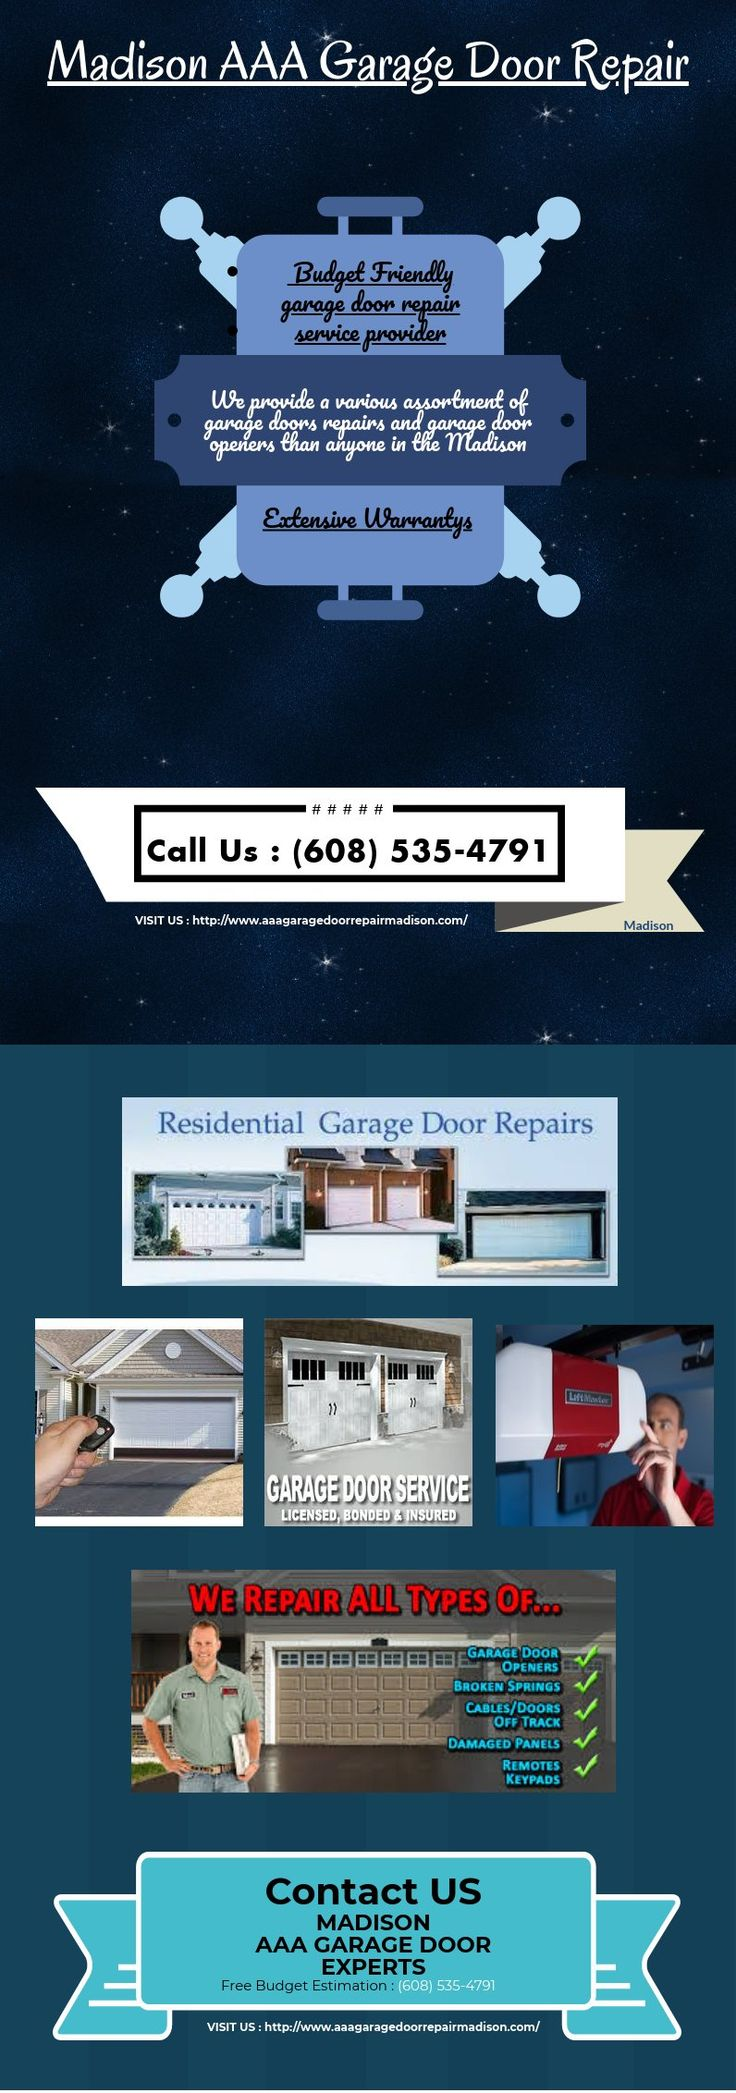 #Garage_Door_Repair_Madison_WI  #Garage_Door_Spring_Repair_Madison  Contact us anytime for free budget estimation.